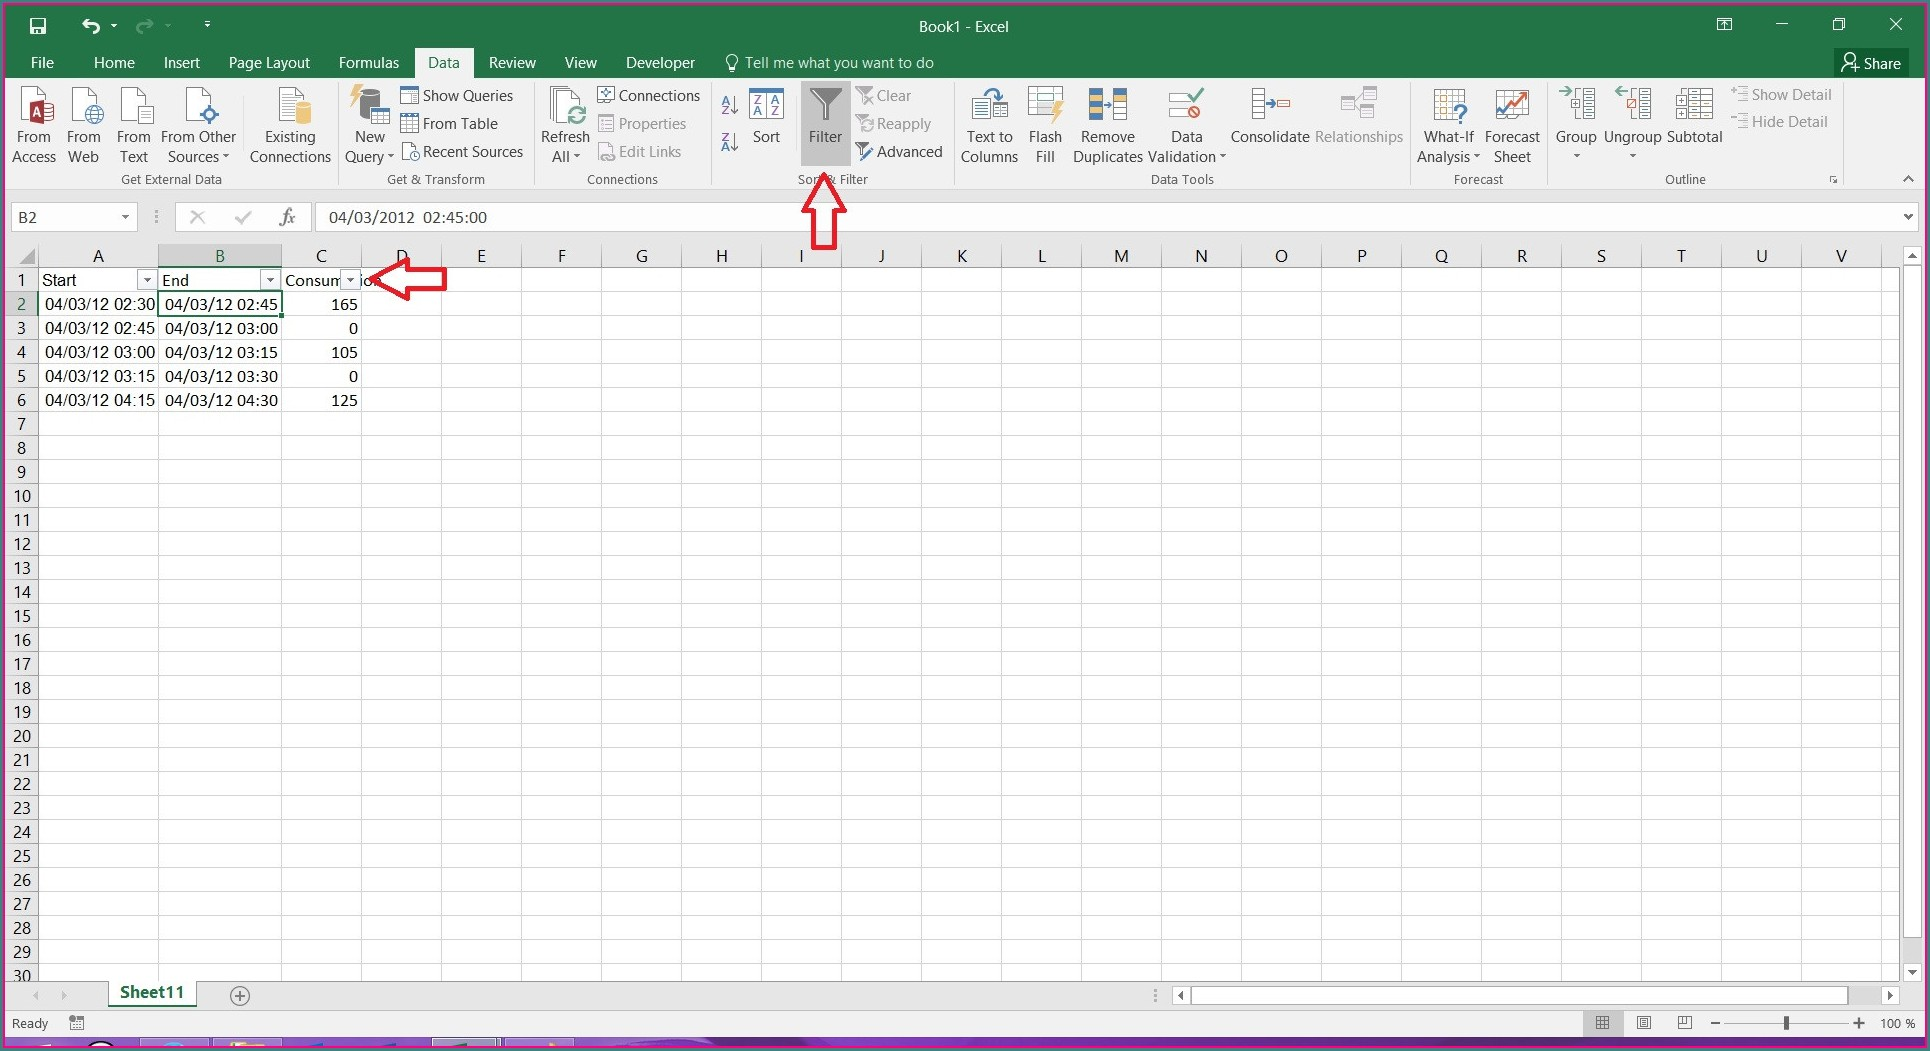 Excel Vba Sort Rows Based On Column